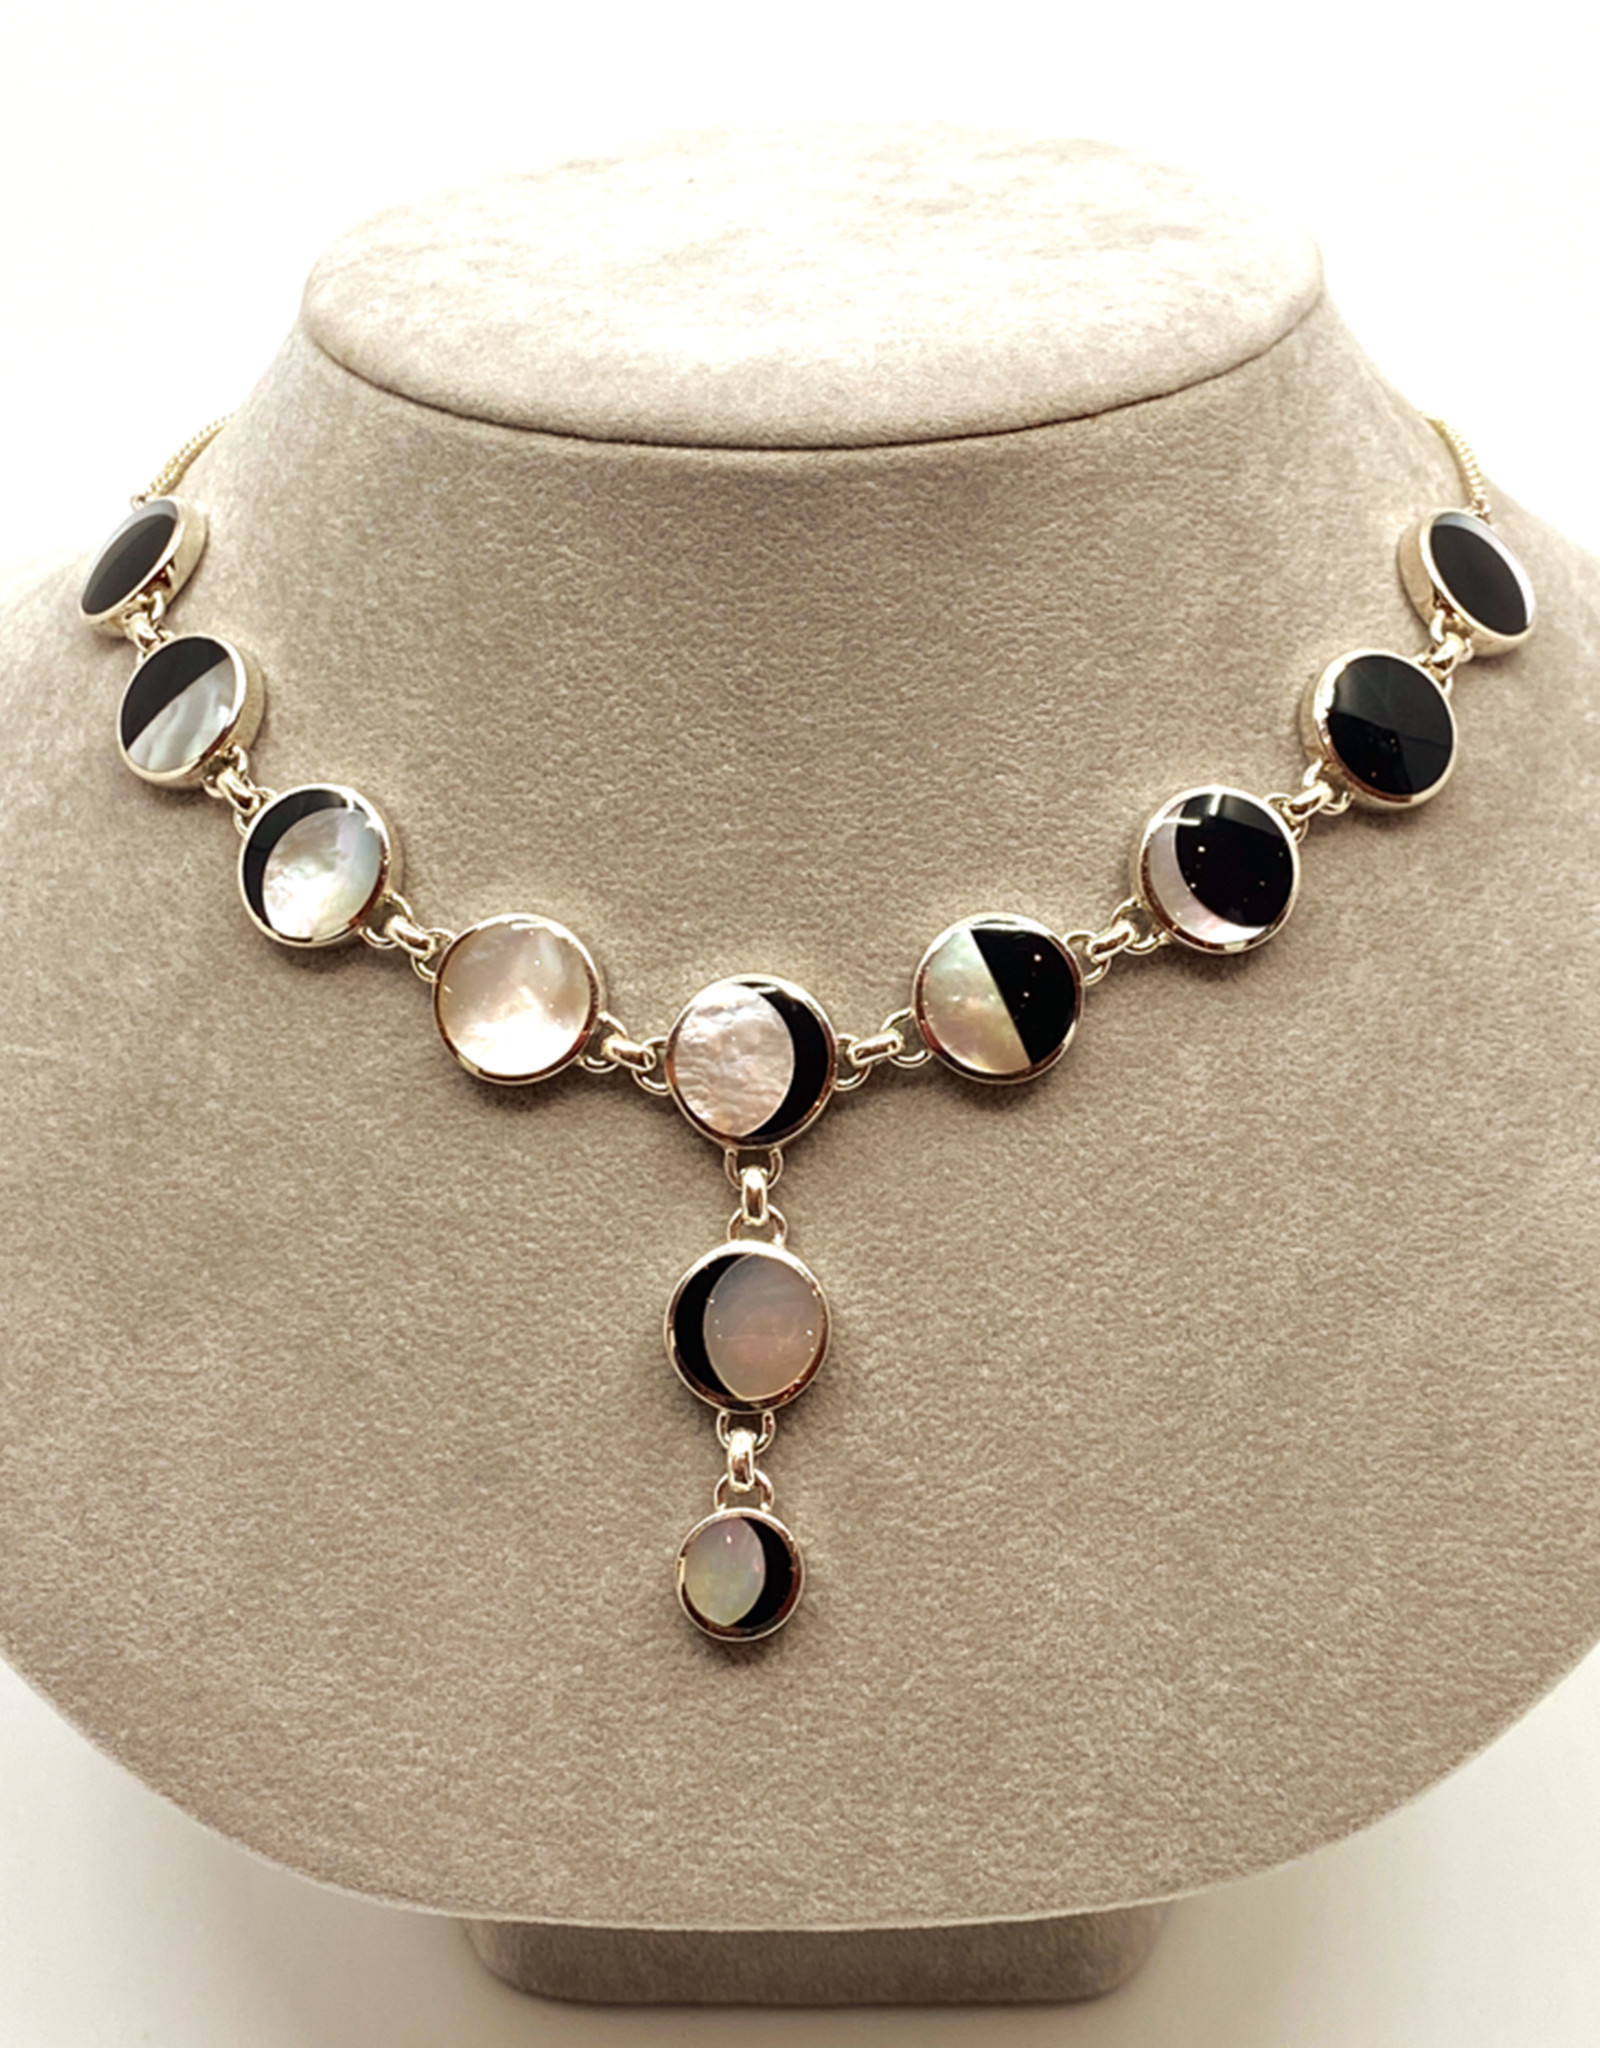 ACLEONI MOONLIGHT NECKLACE